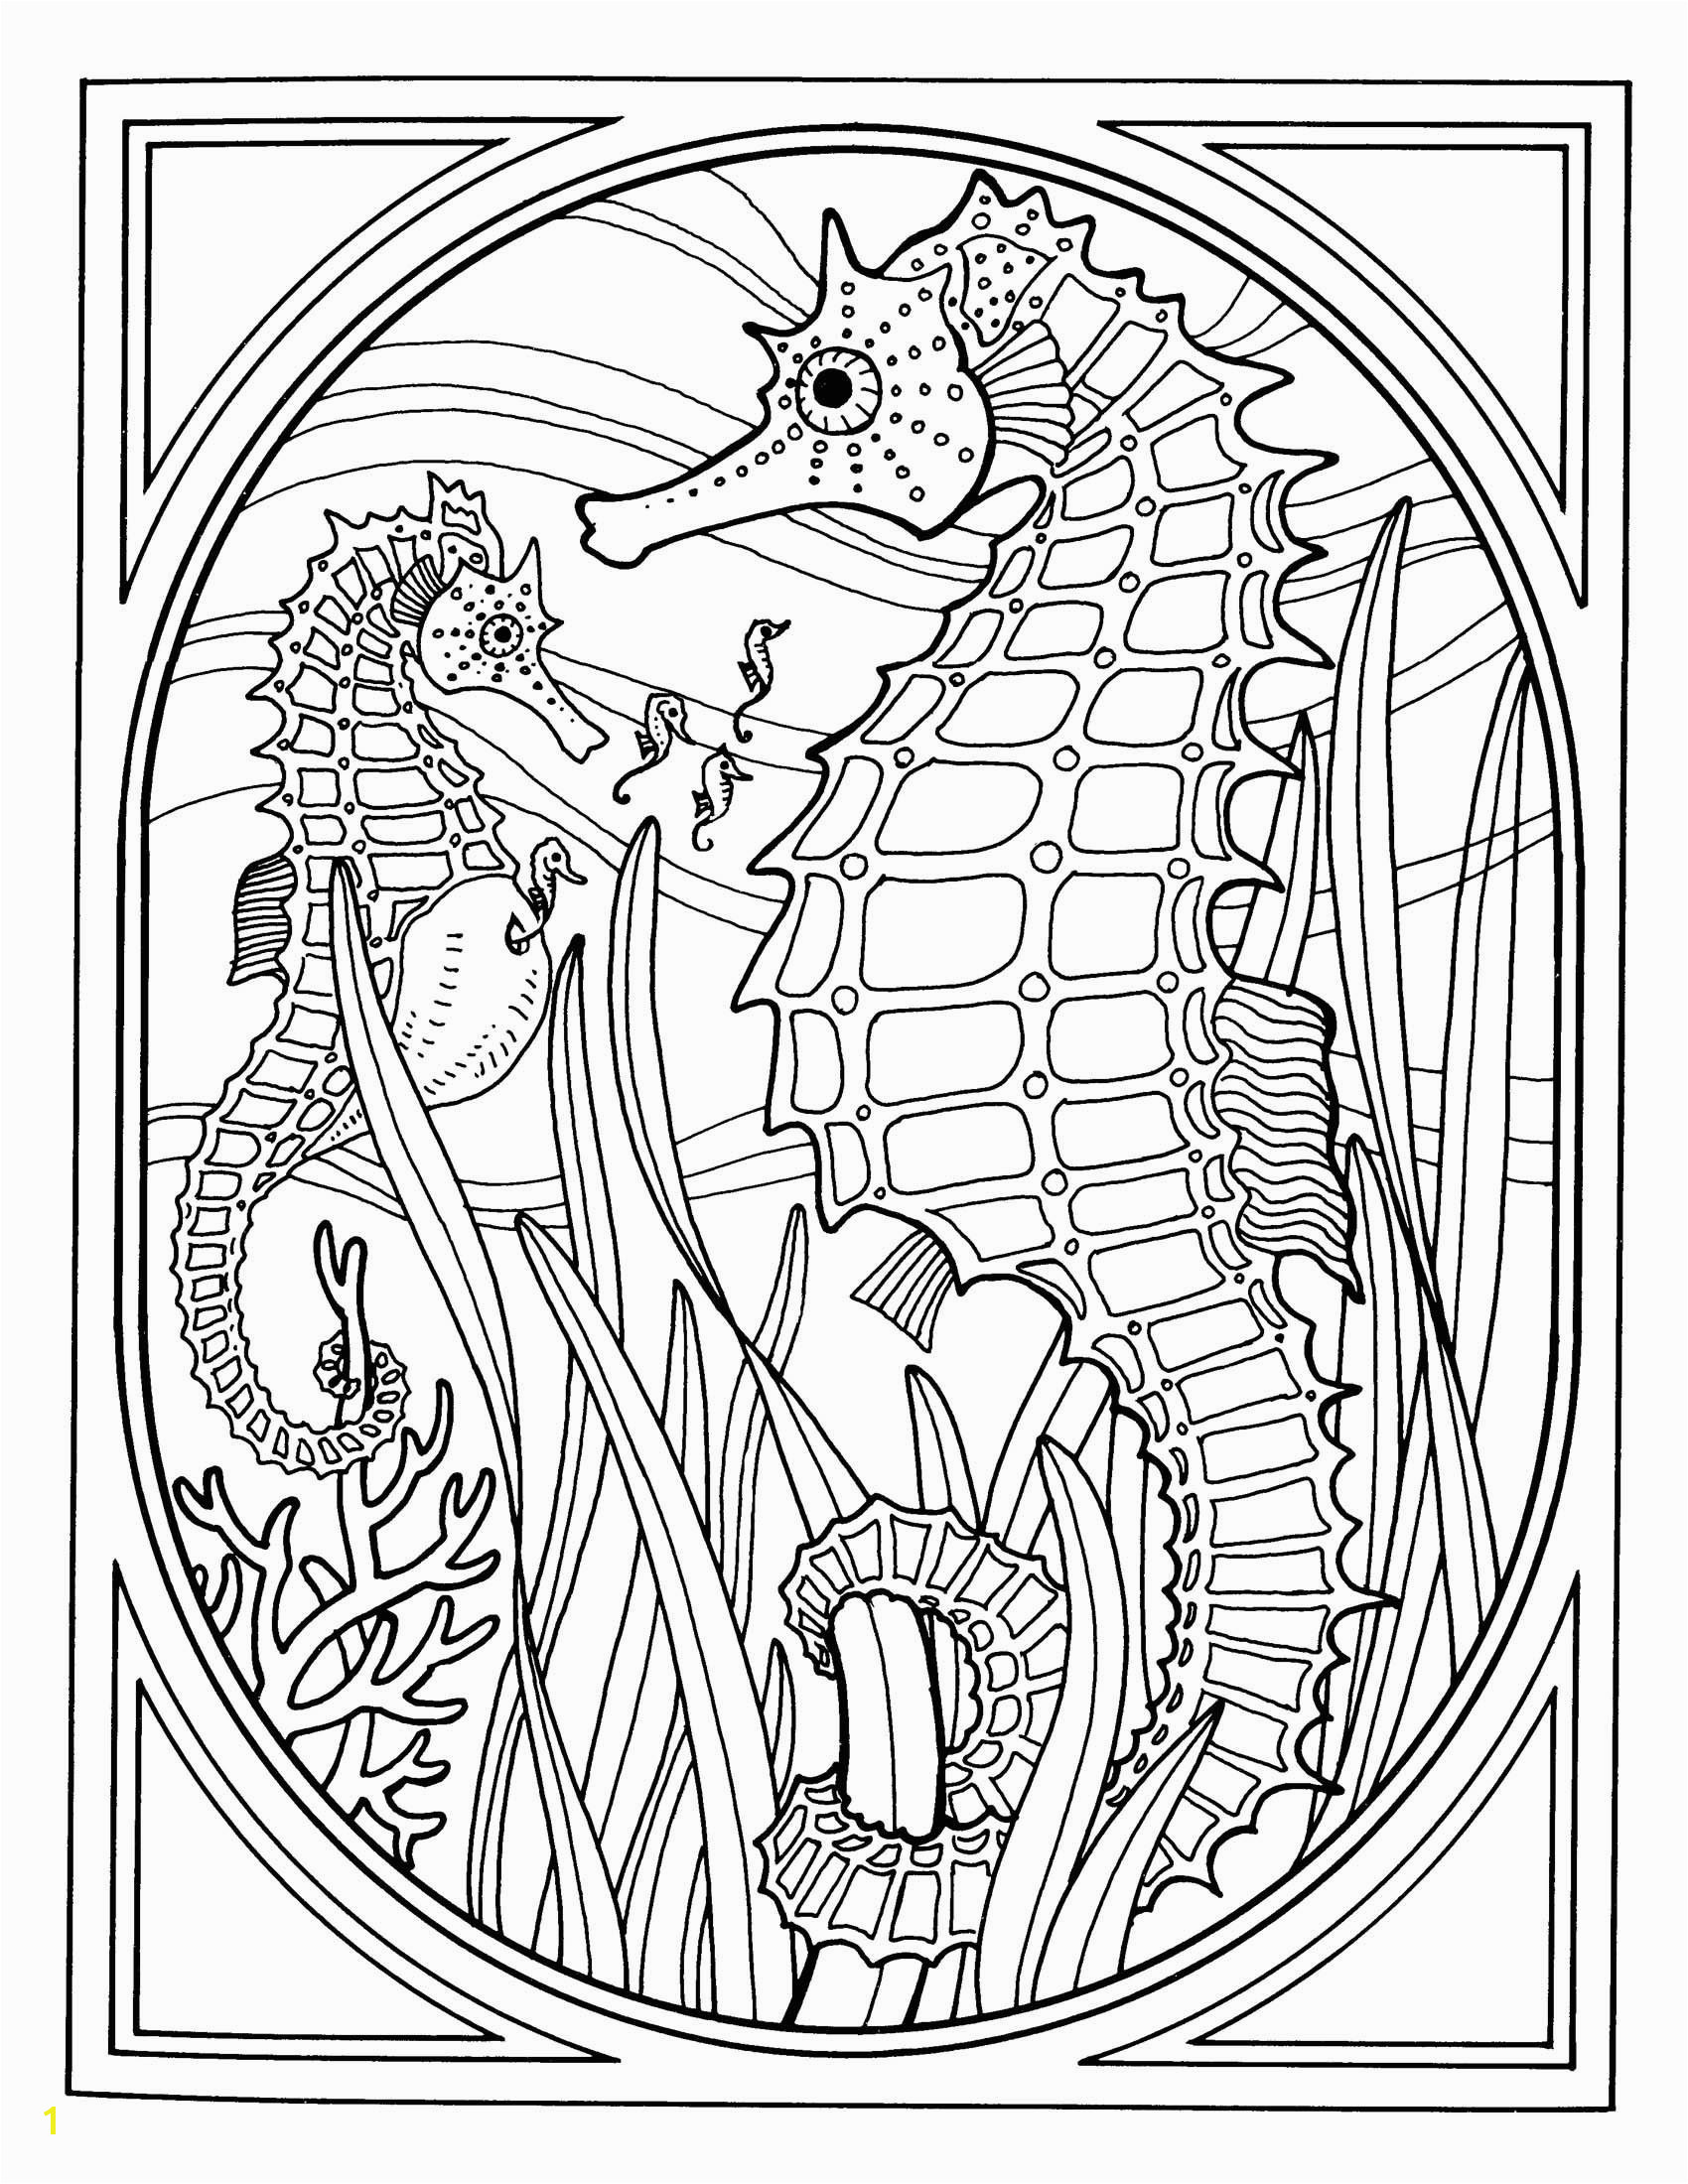 Frei Druckbare Kinder Malvorlagen Erstaunlich Free Printable Sea Life Coloring Pages tony Diterlizzi Never